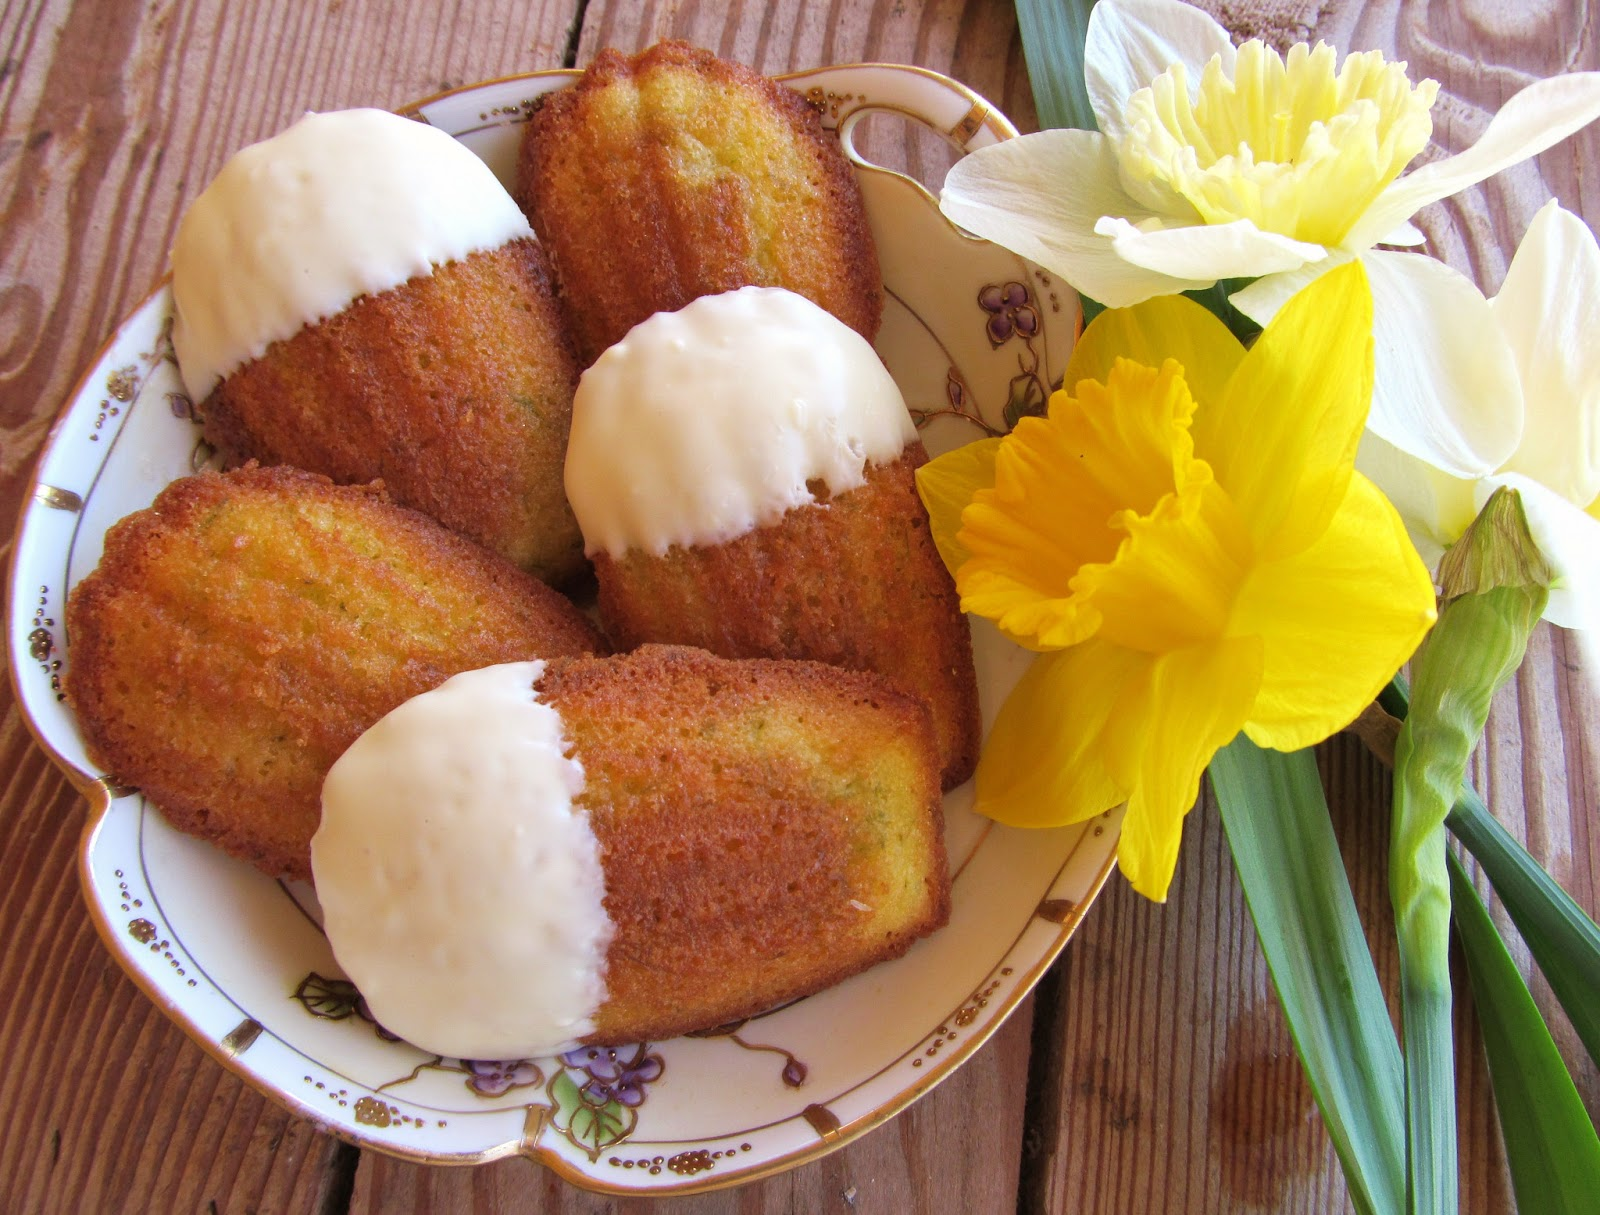 Carrington Lane Bakery: White Chocolate Dipped Lime Madeleines